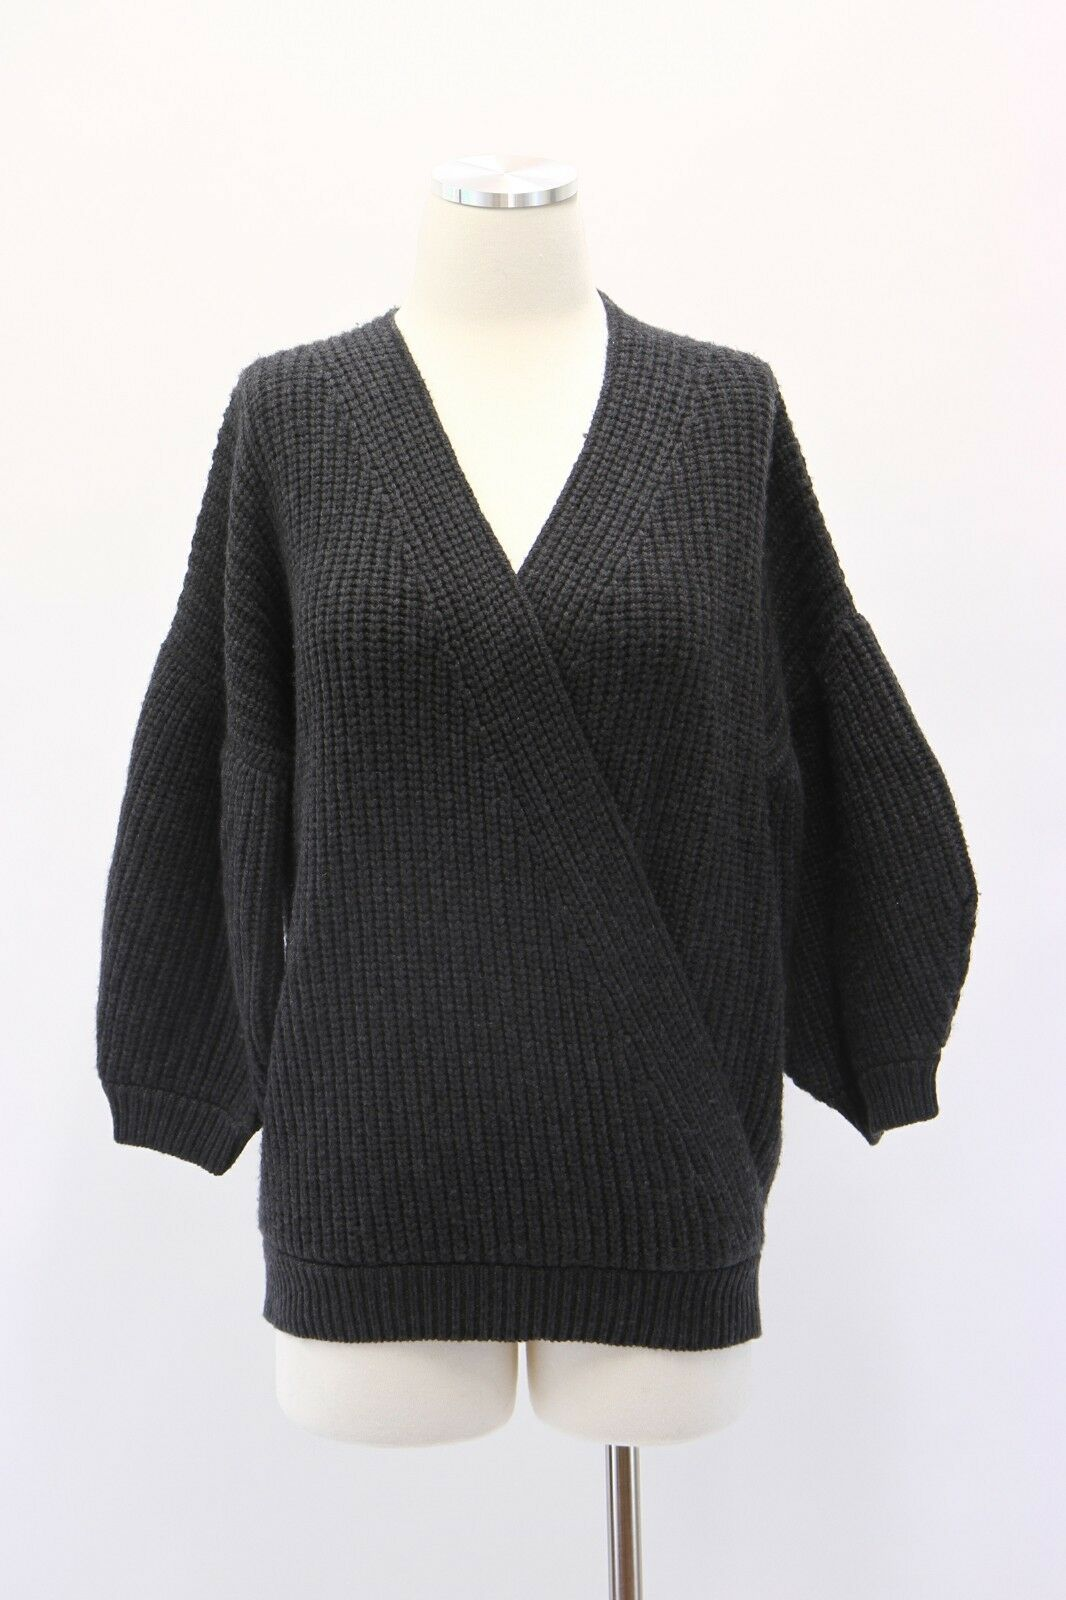 NWT Brunello Cucinelli 100% Cashmere Chunky Ribbed Wrap Sweater Size M A181